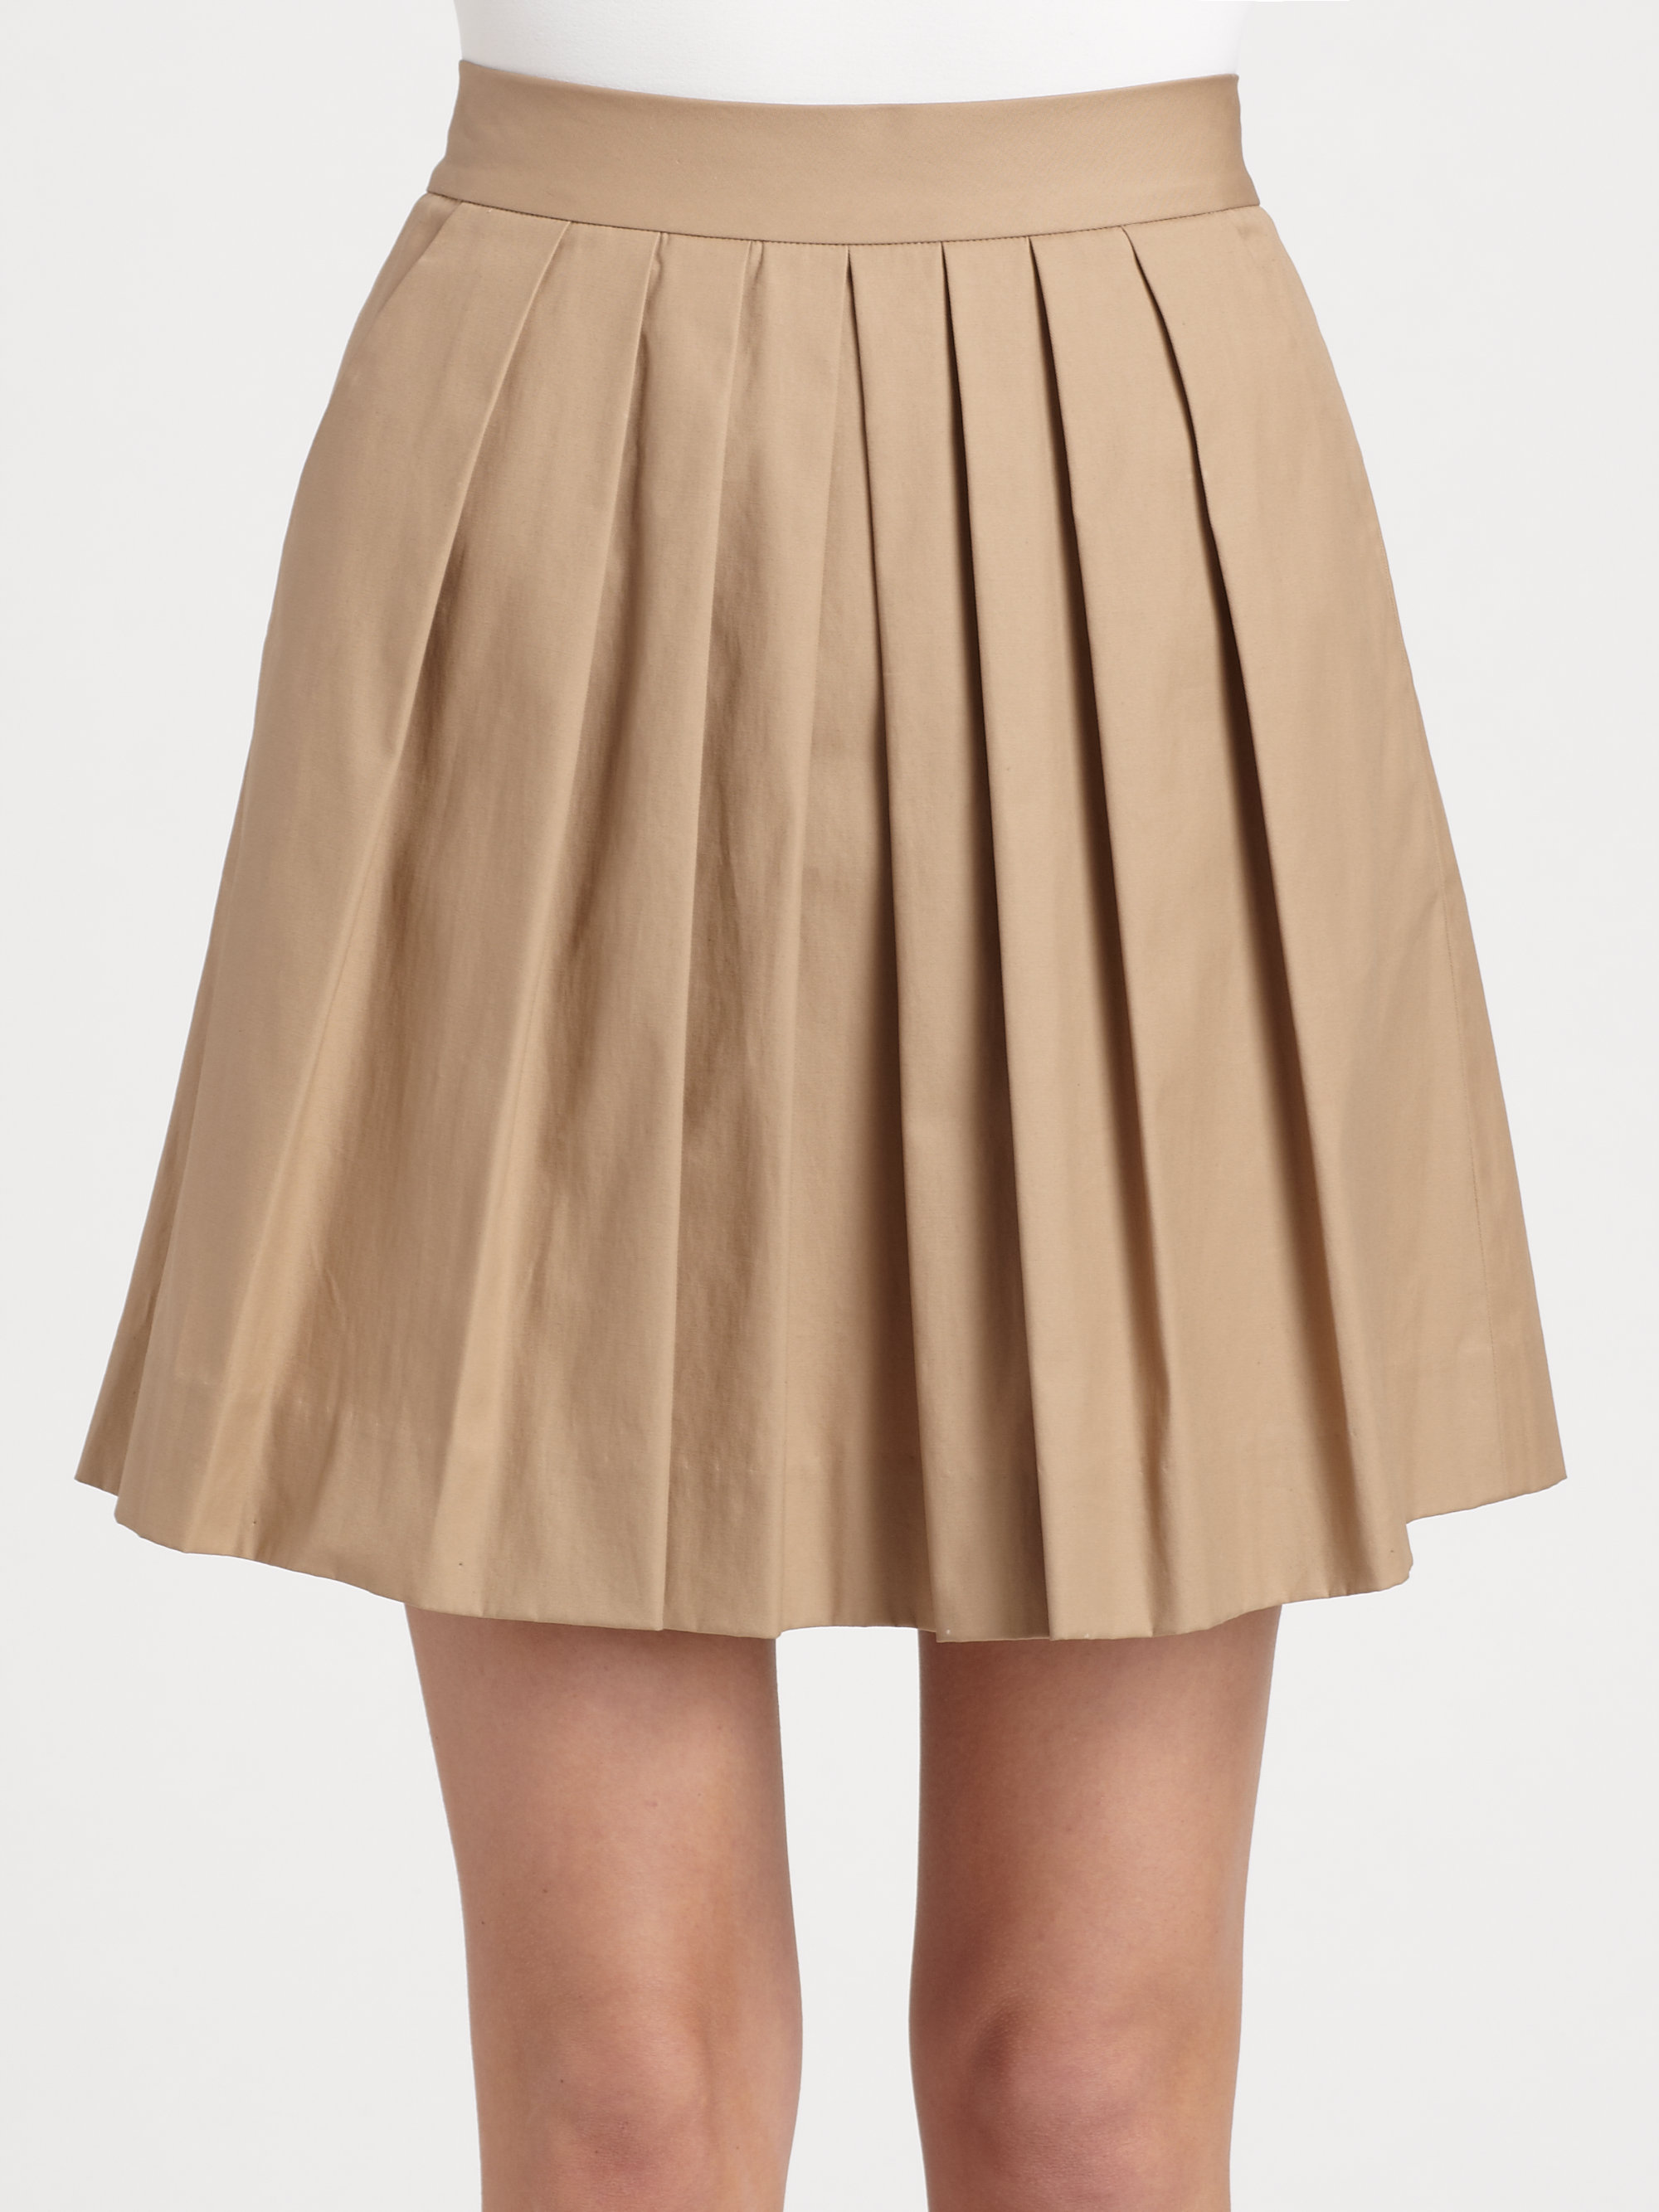 8ed6a814d2 Pleated Khaki Skirt - Redskirtz